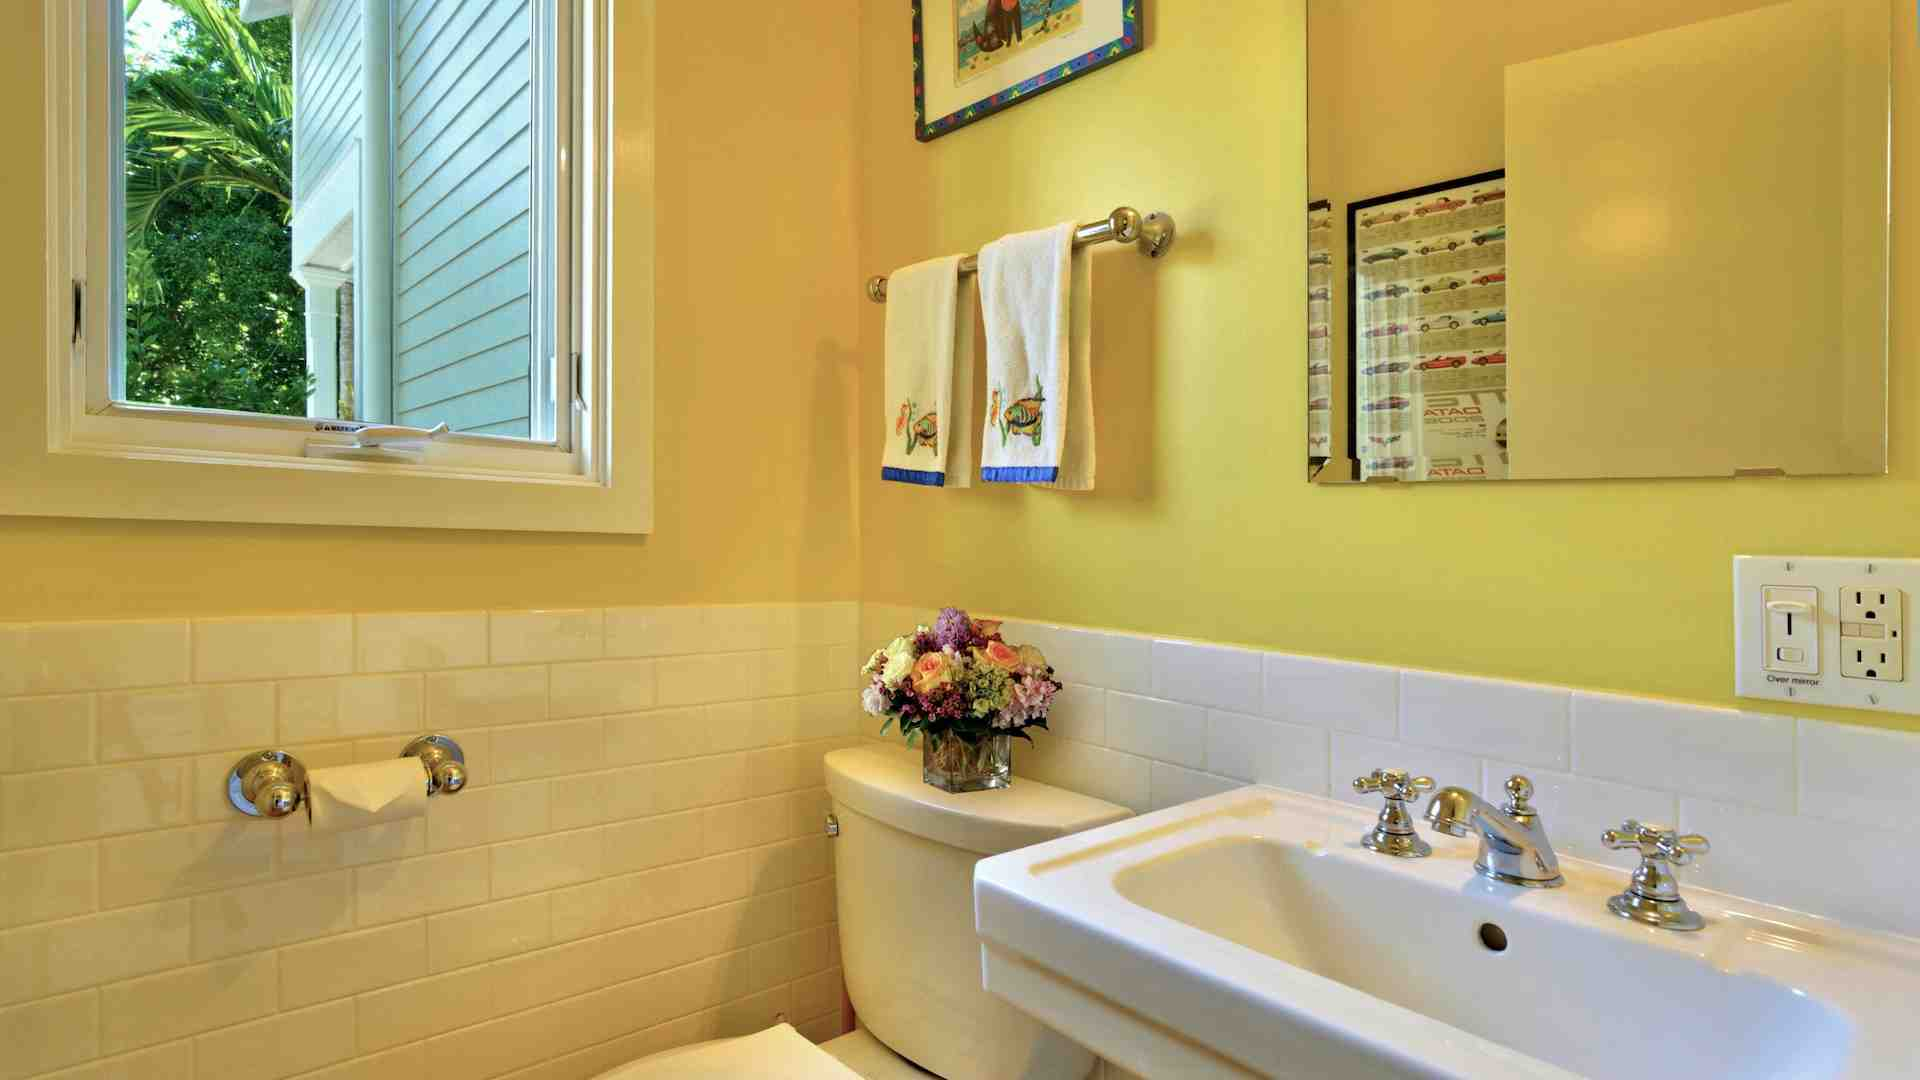 There's a powder room in the hall for the convenience of your guests...